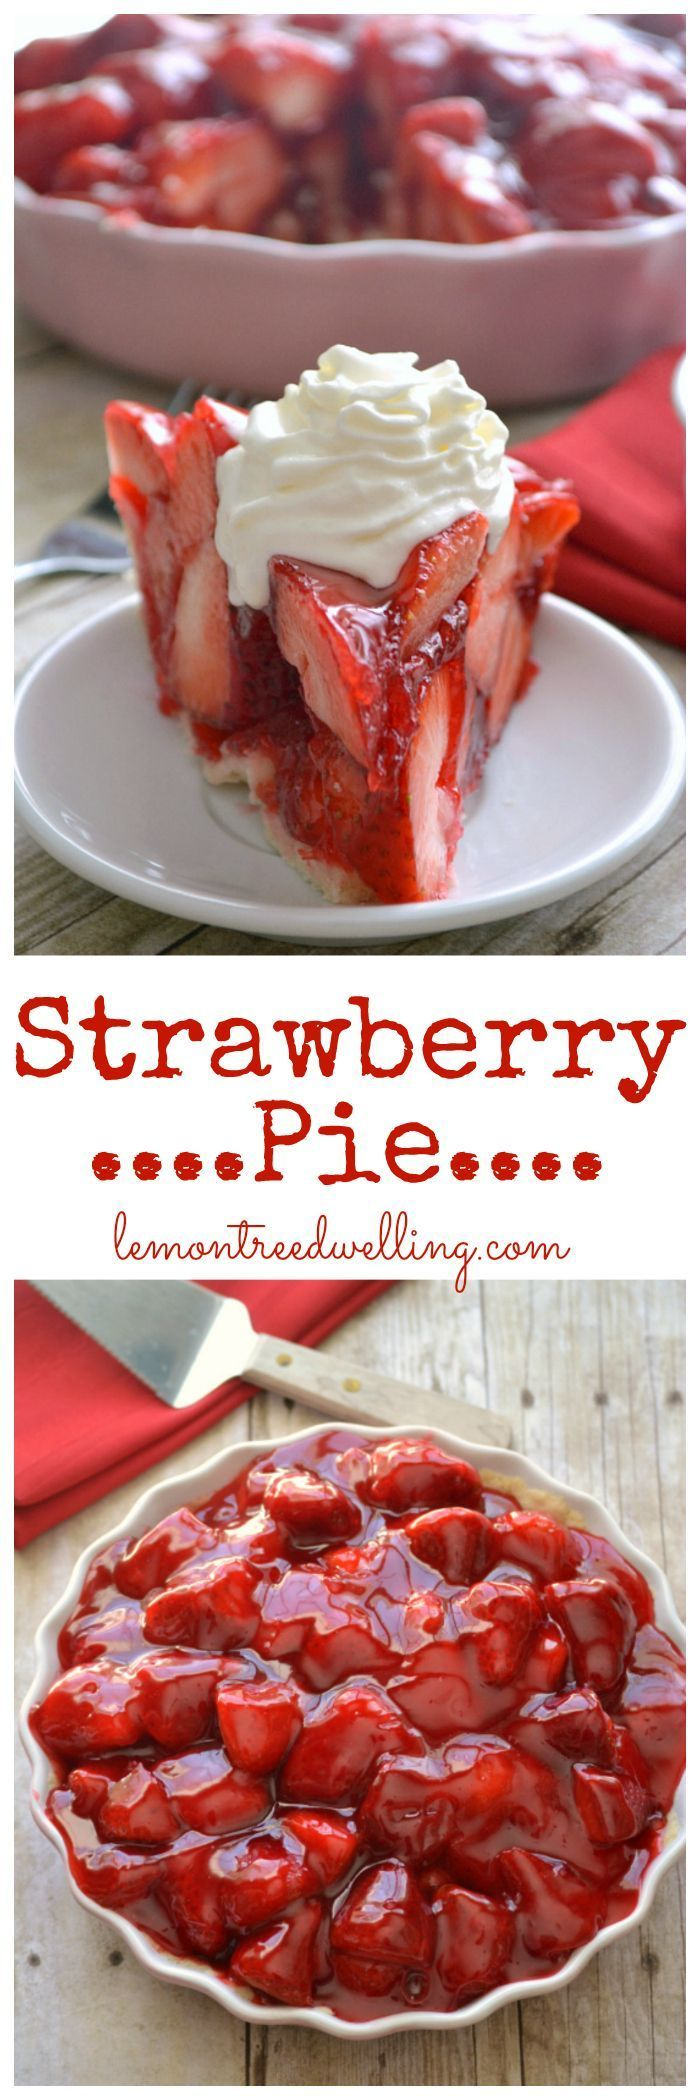 The BEST Strawberry Pie! Fresh strawberries mounded high in a rich, buttery crust. A little (or big) slice of delicious! @ctrochelman